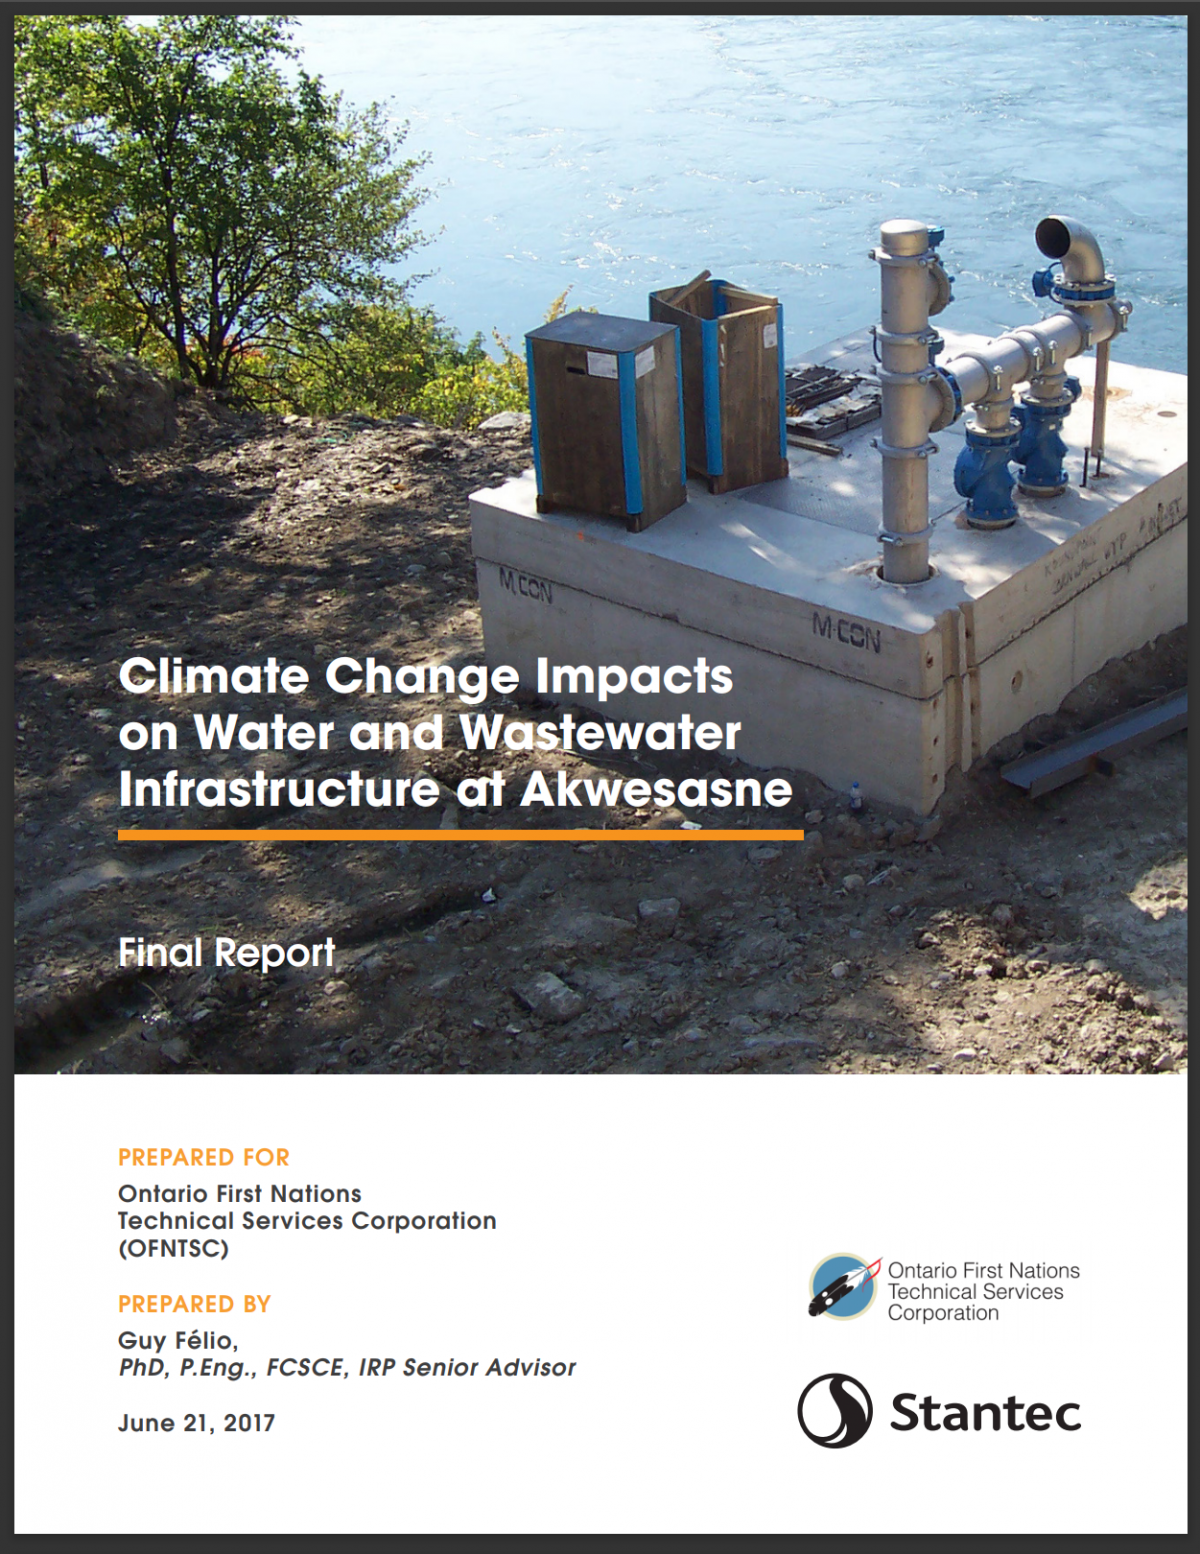 CLIMATE CHANGE IMPACTS ON WATER AND WASTEWATER INFRASTRUCTURE AT AKWESASNE